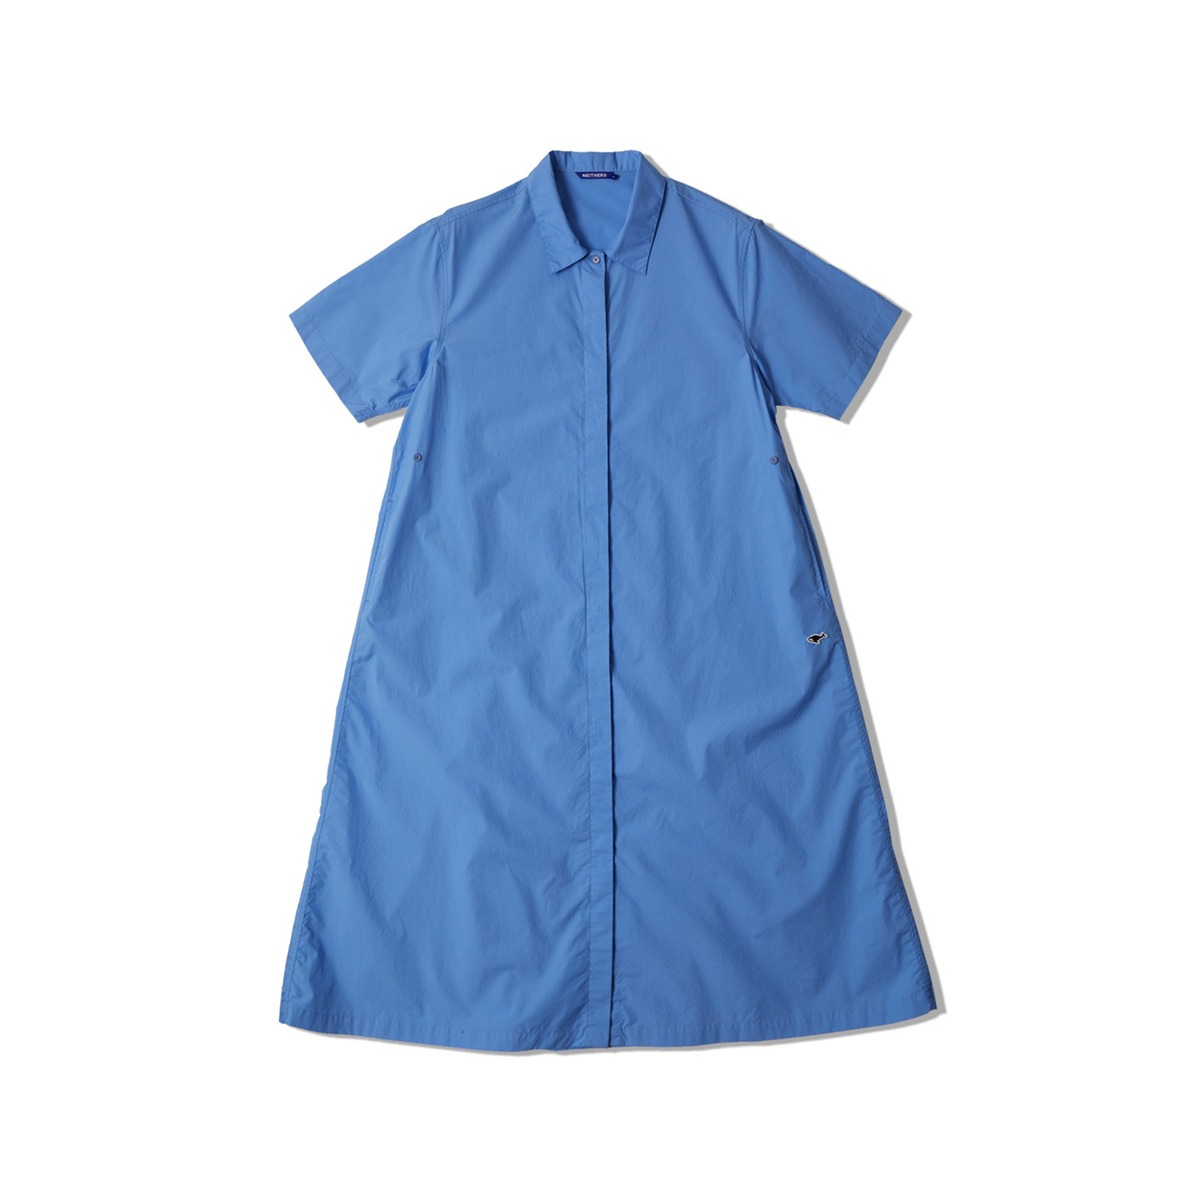 [NEITHERS] COMFORT S/S DRESS 'BLUE'